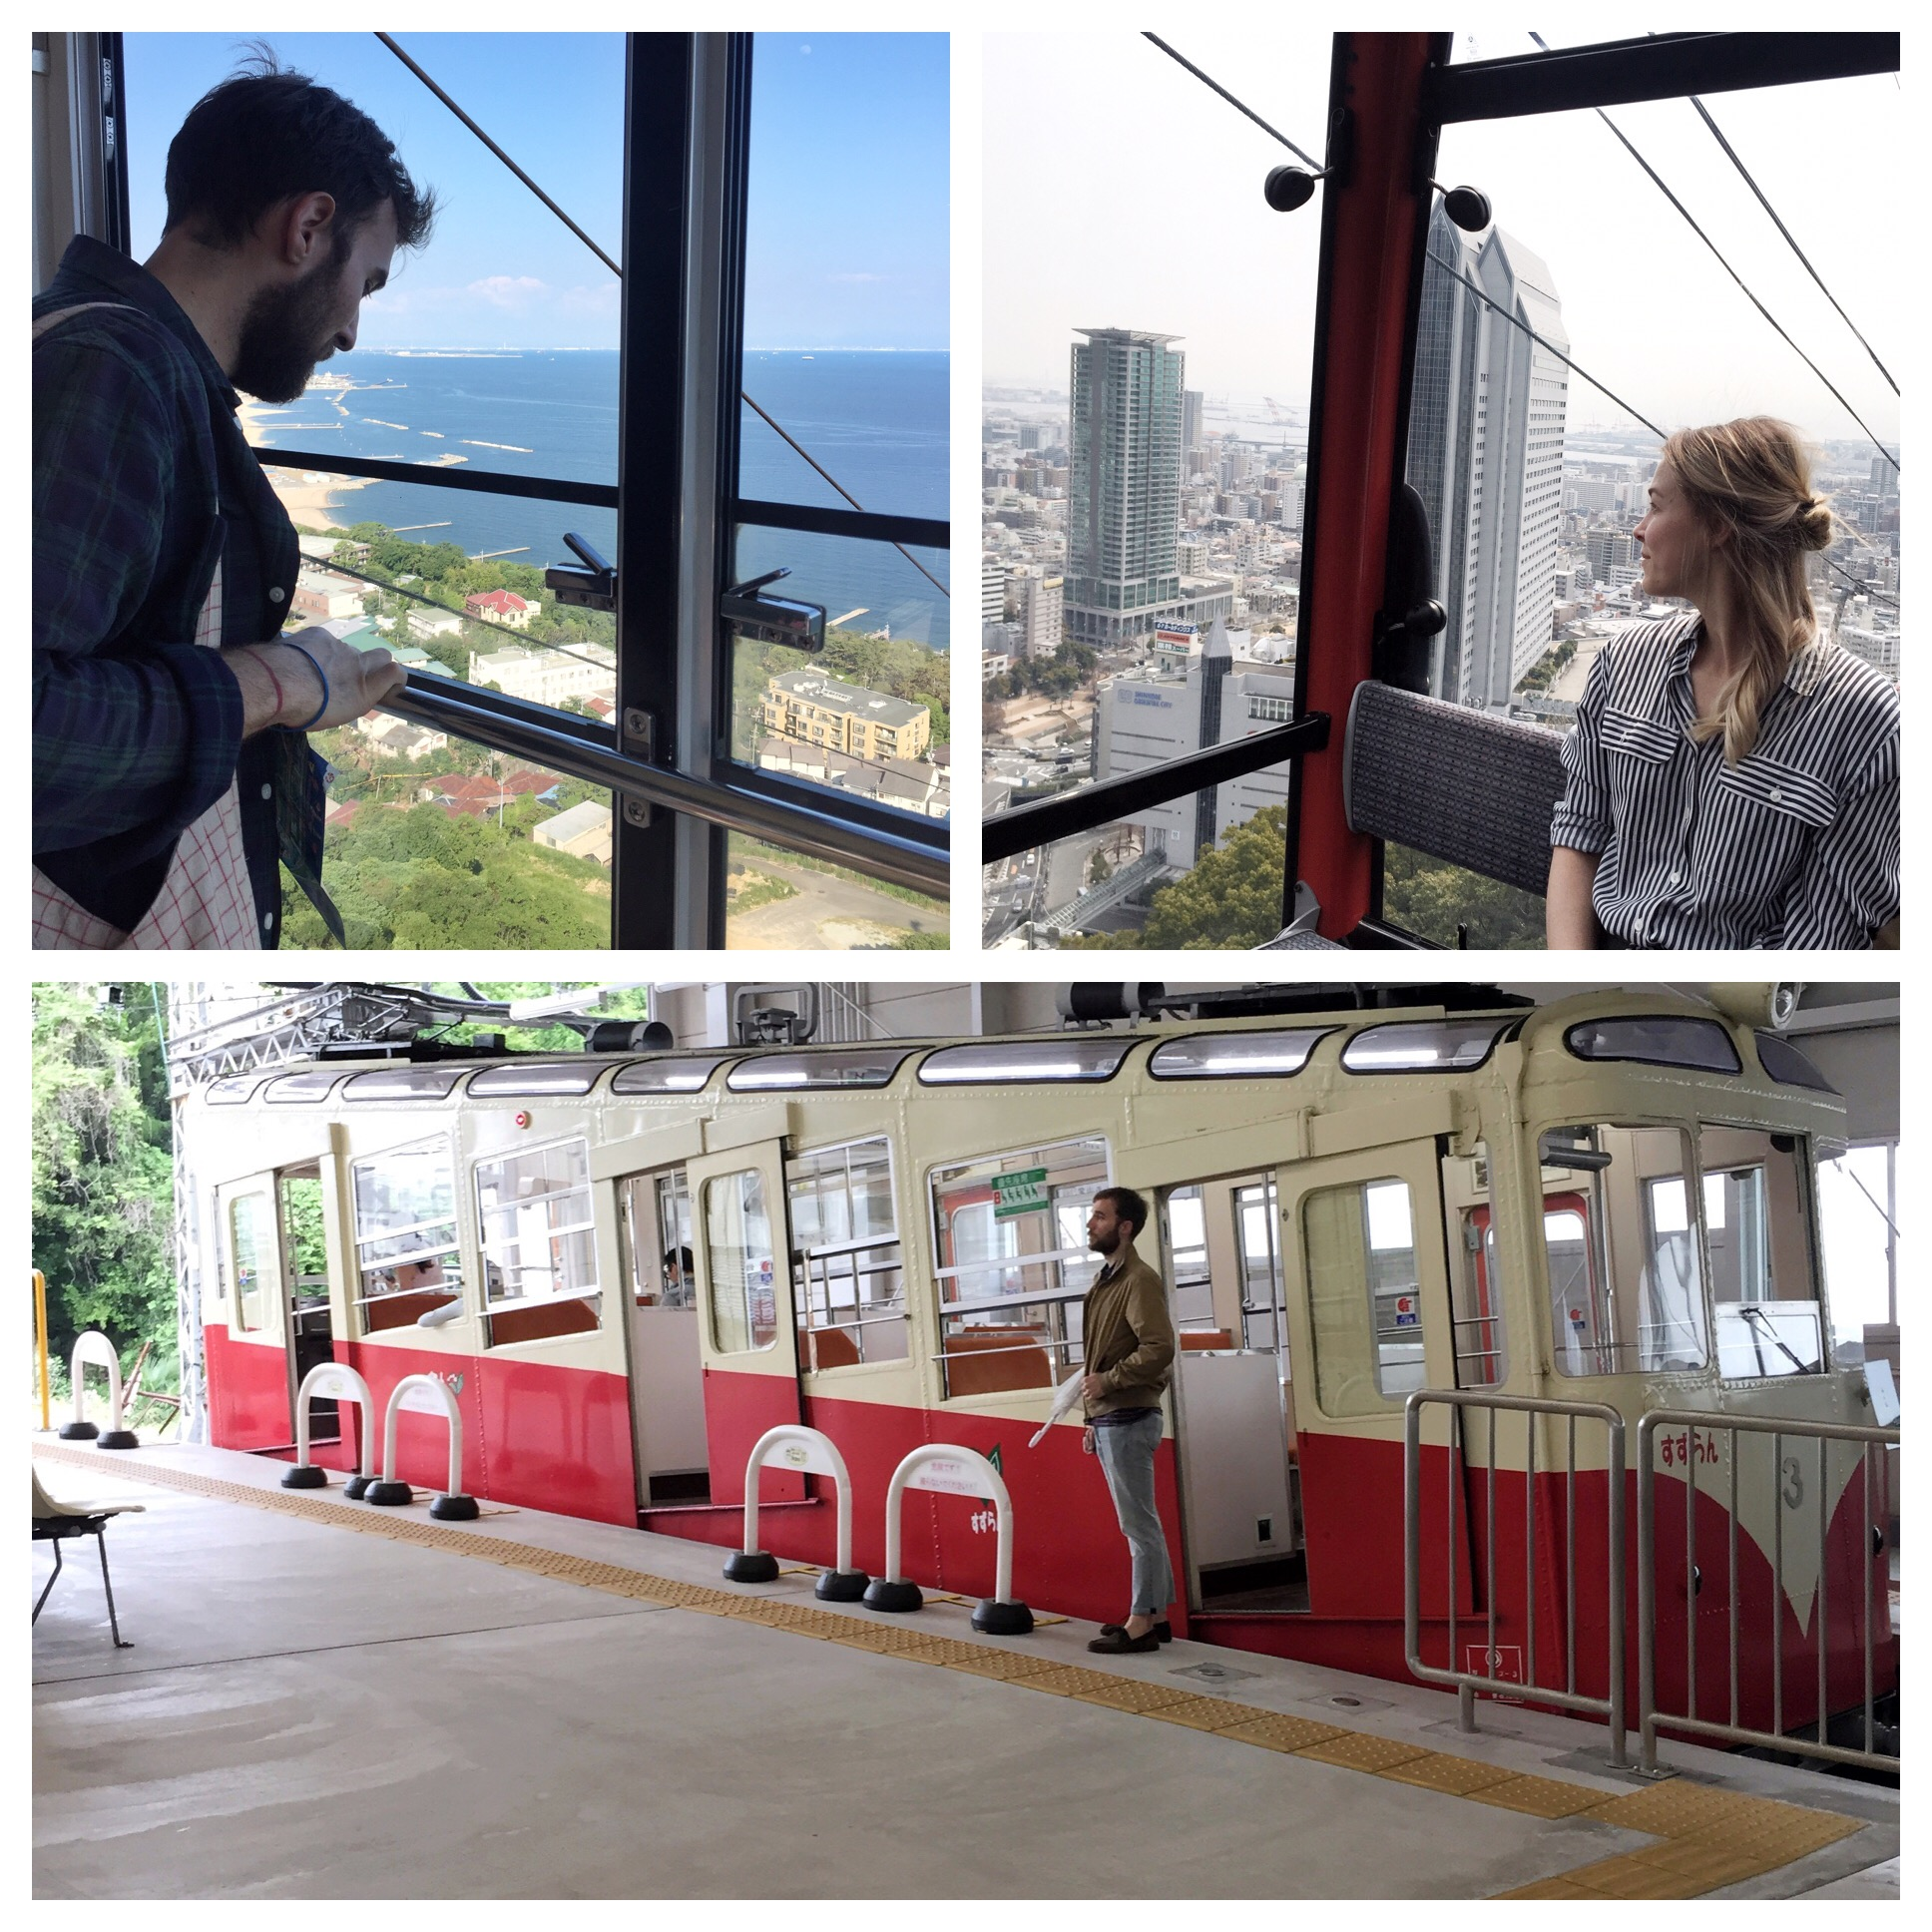 Some cable car adventures!